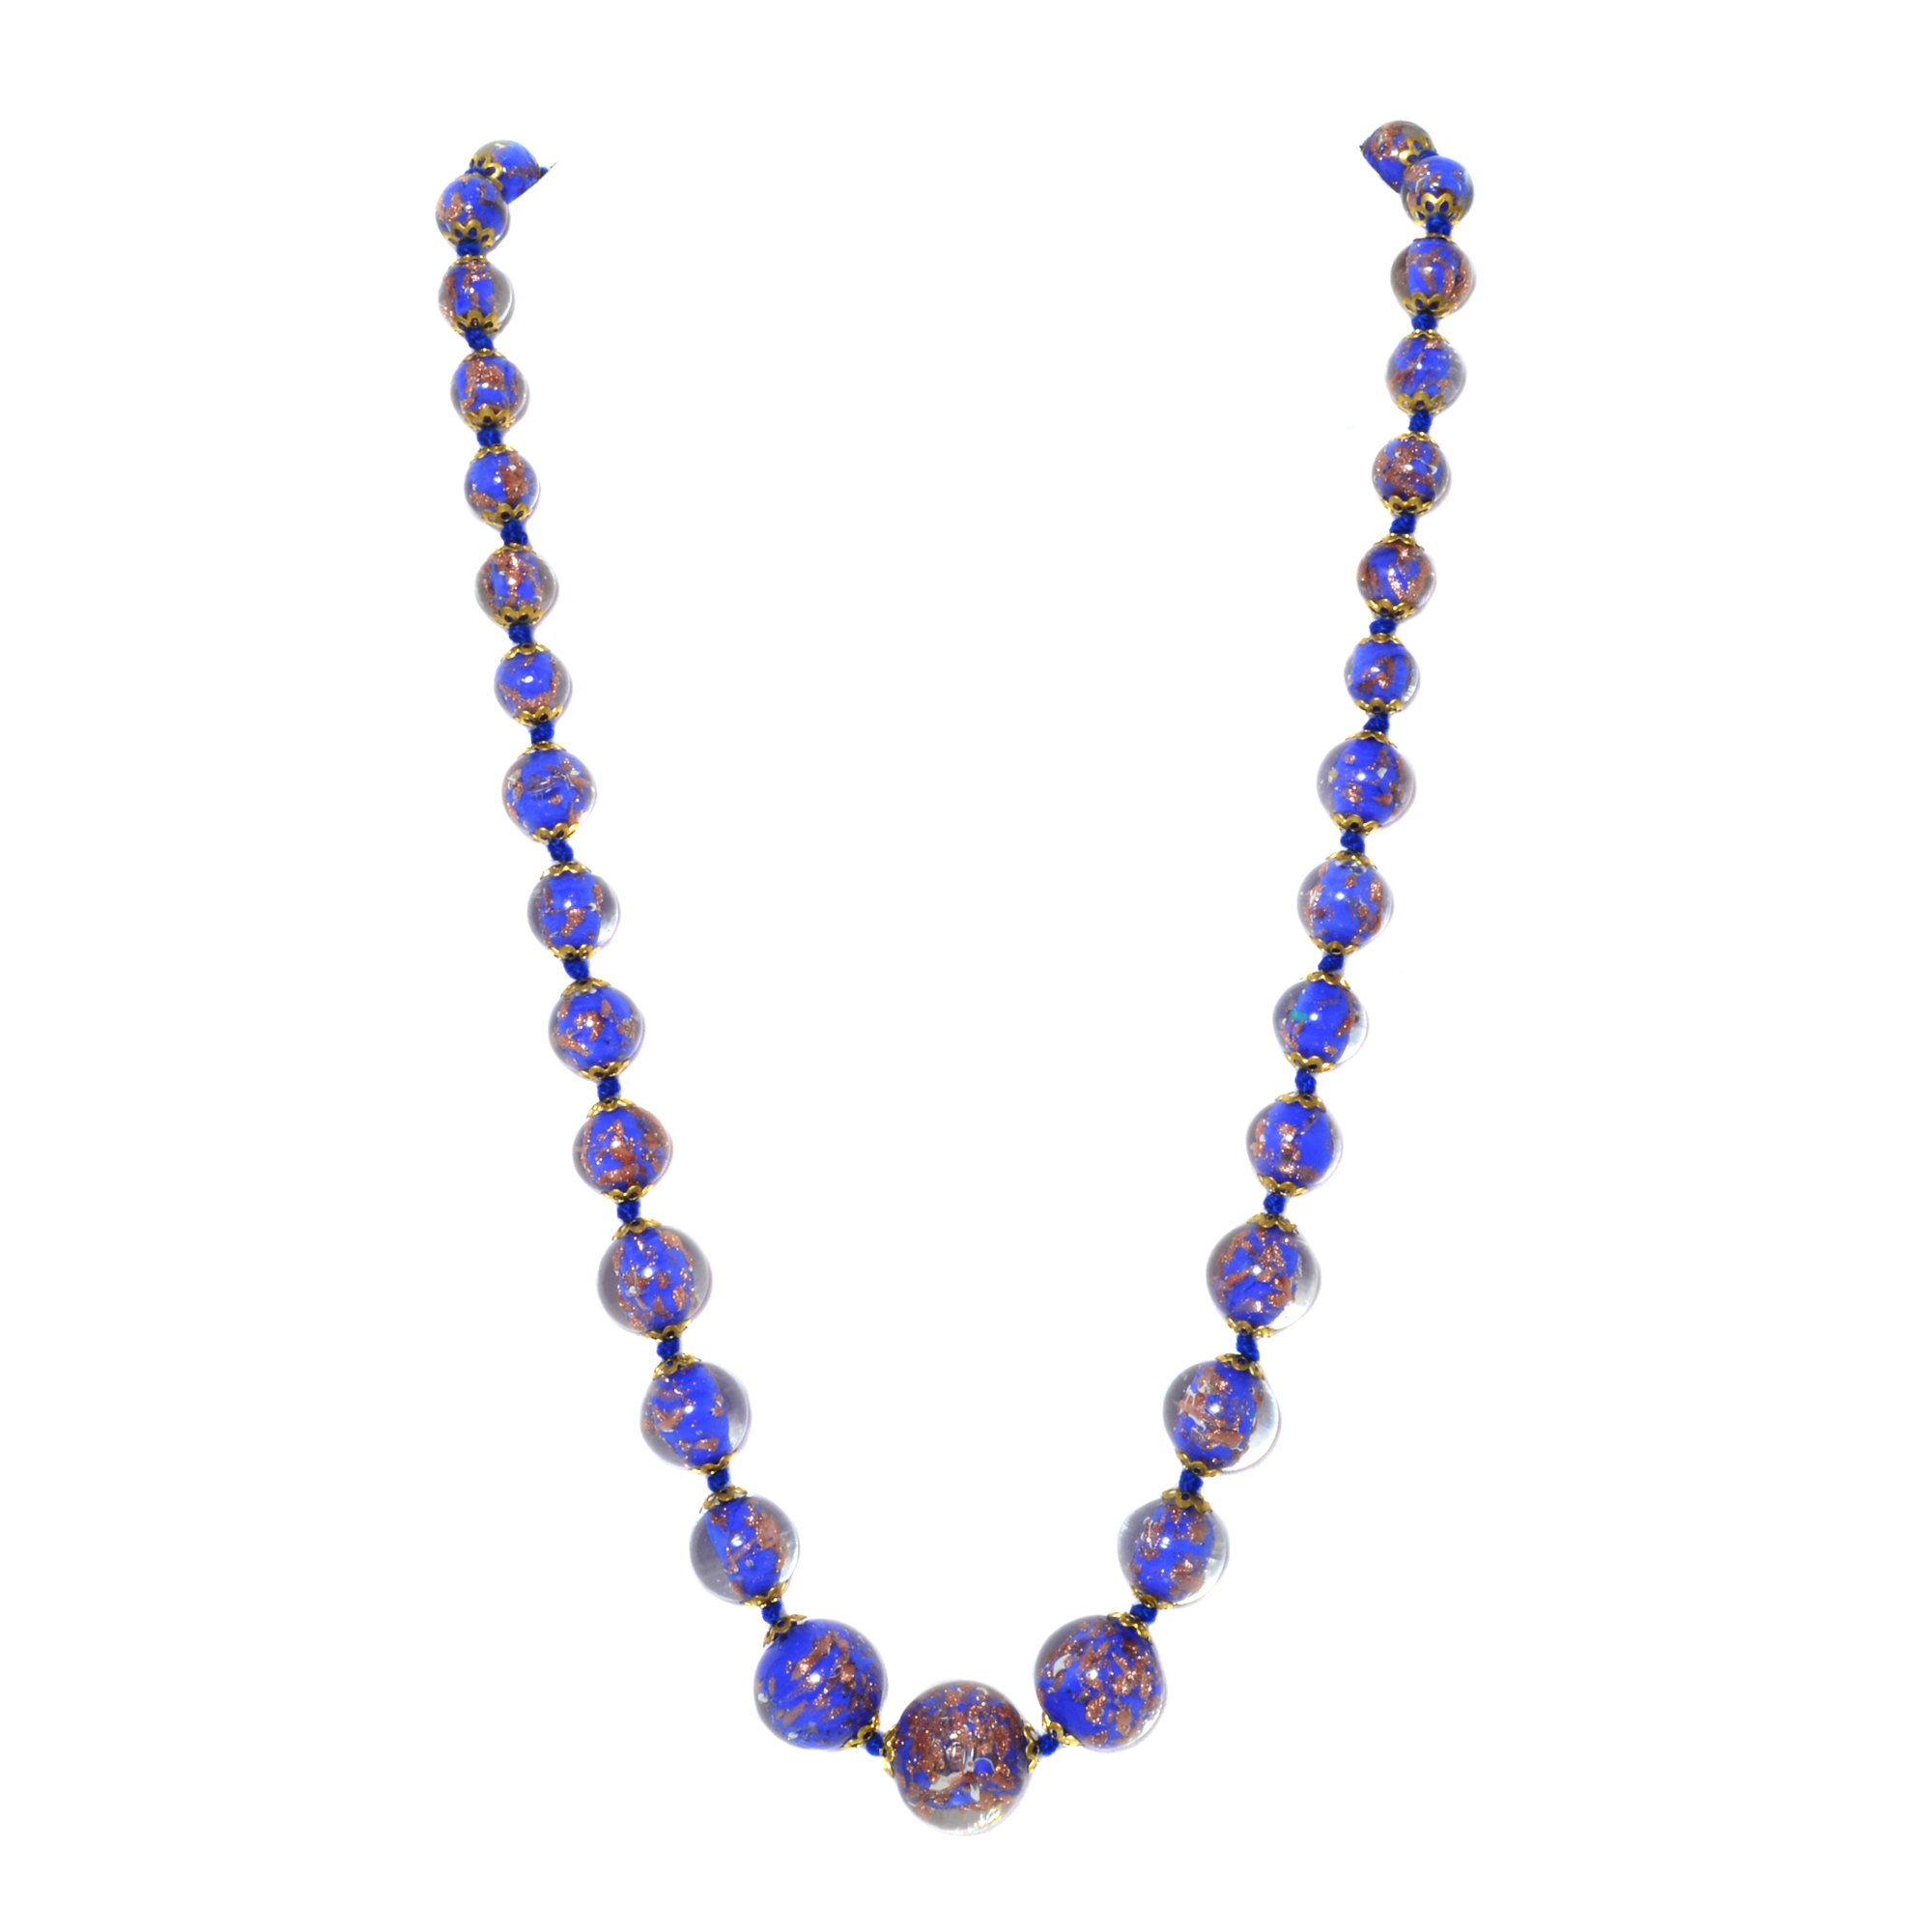 Just Give Me Jewels Venice Graduated Murano Sommerso Aventurina Glass Bead Strand Necklace in Blue, 19+2'' Extender